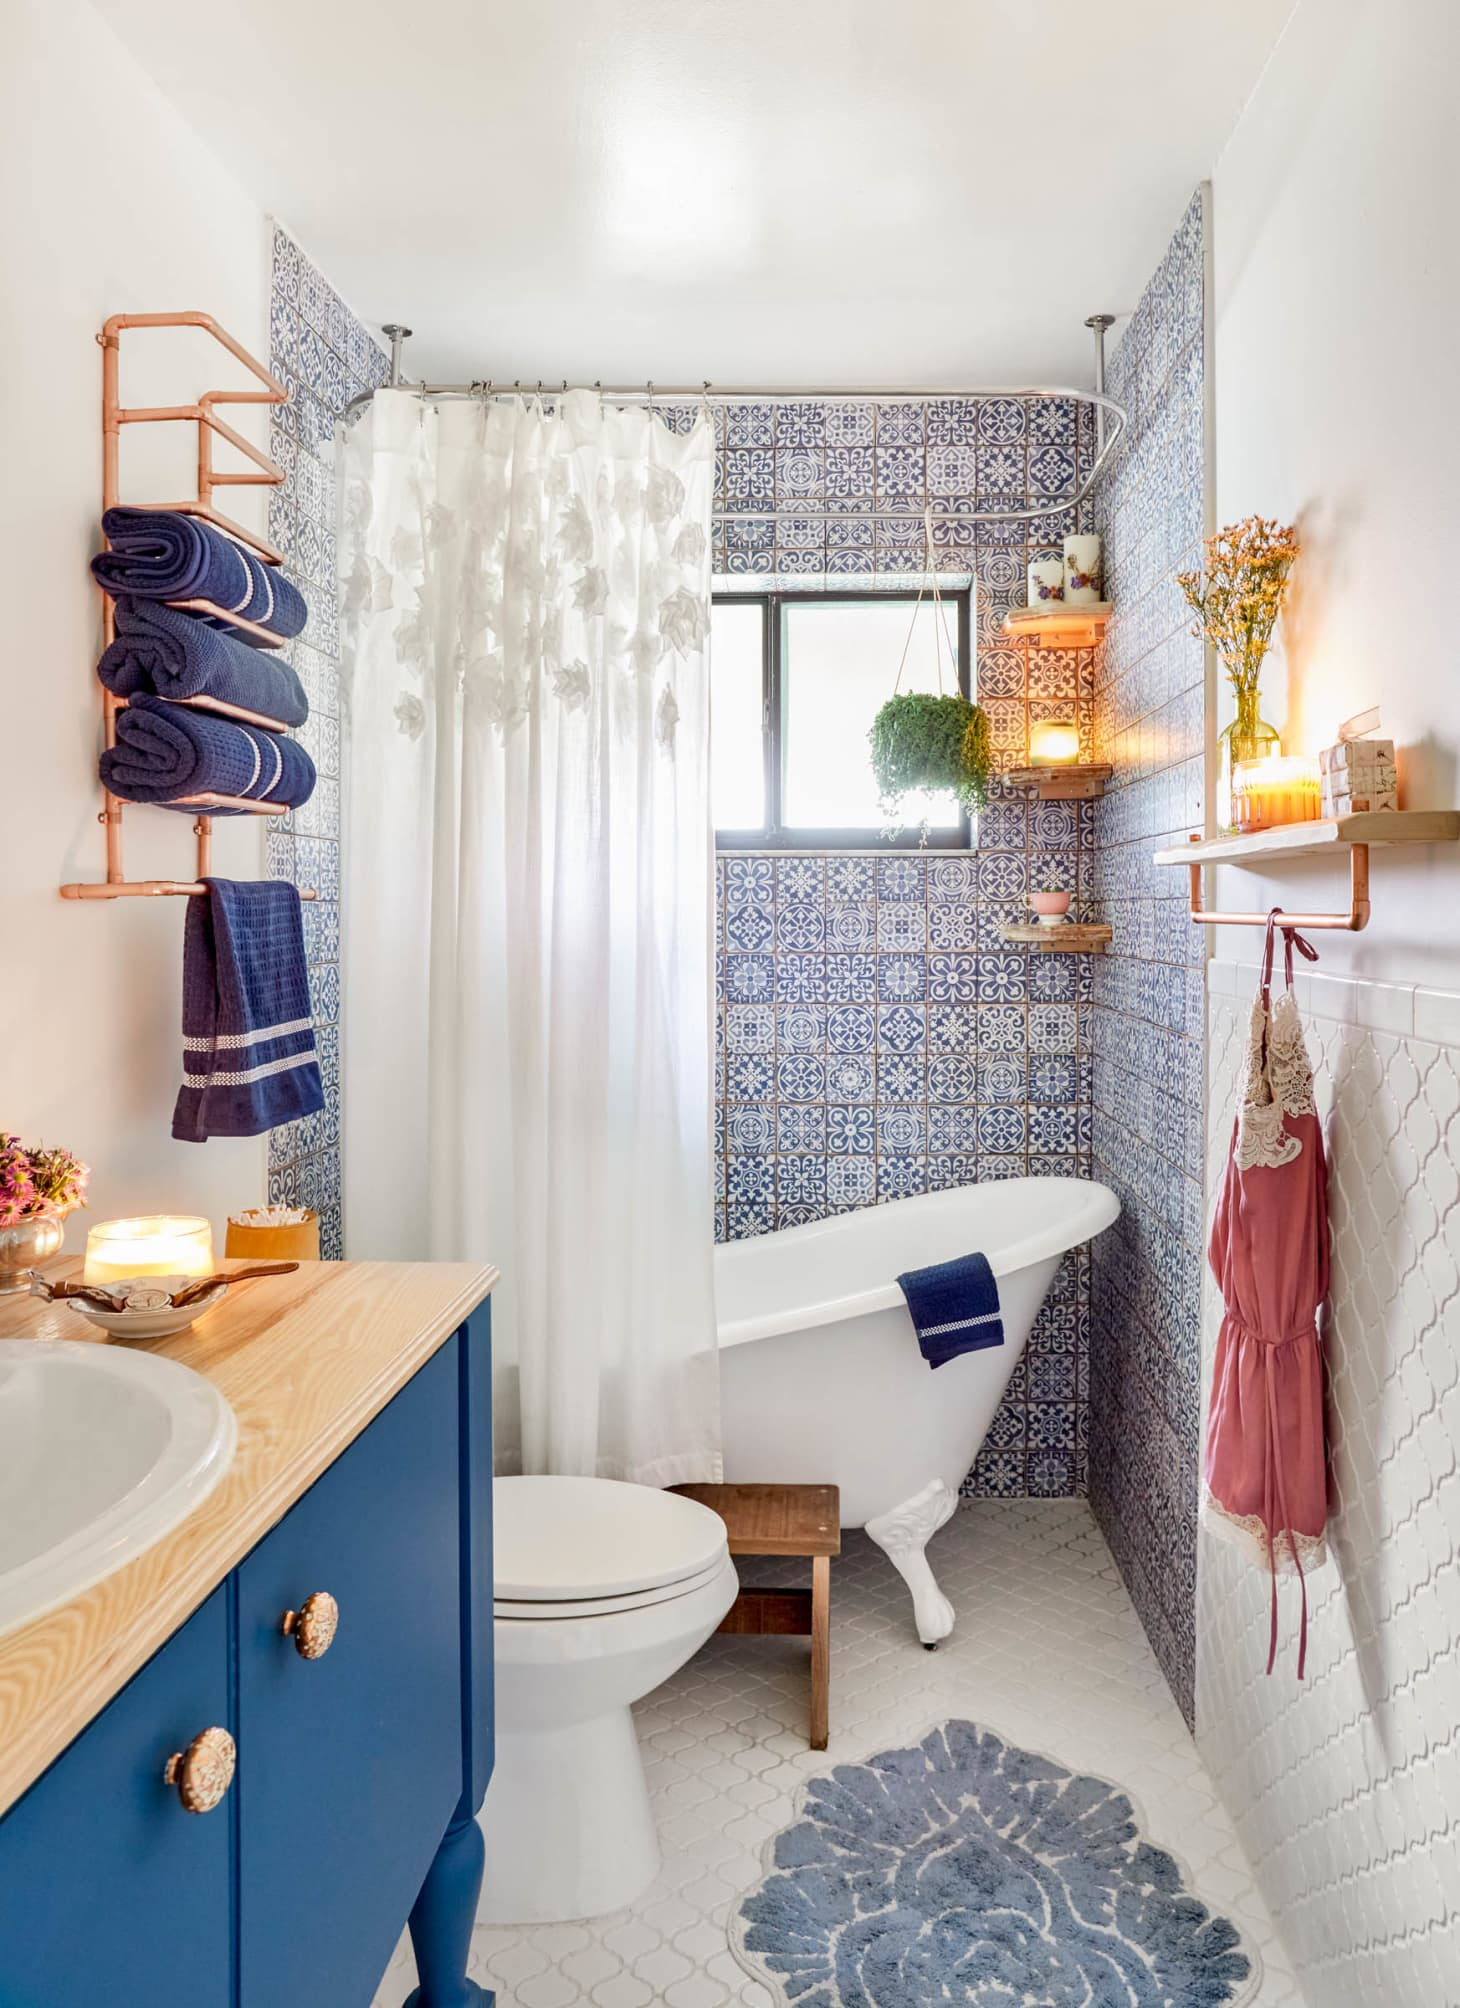 Decorations for Small Bathrooms Inspirational 50 Best Small Bathroom Decorating Ideas Tiny Bathroom